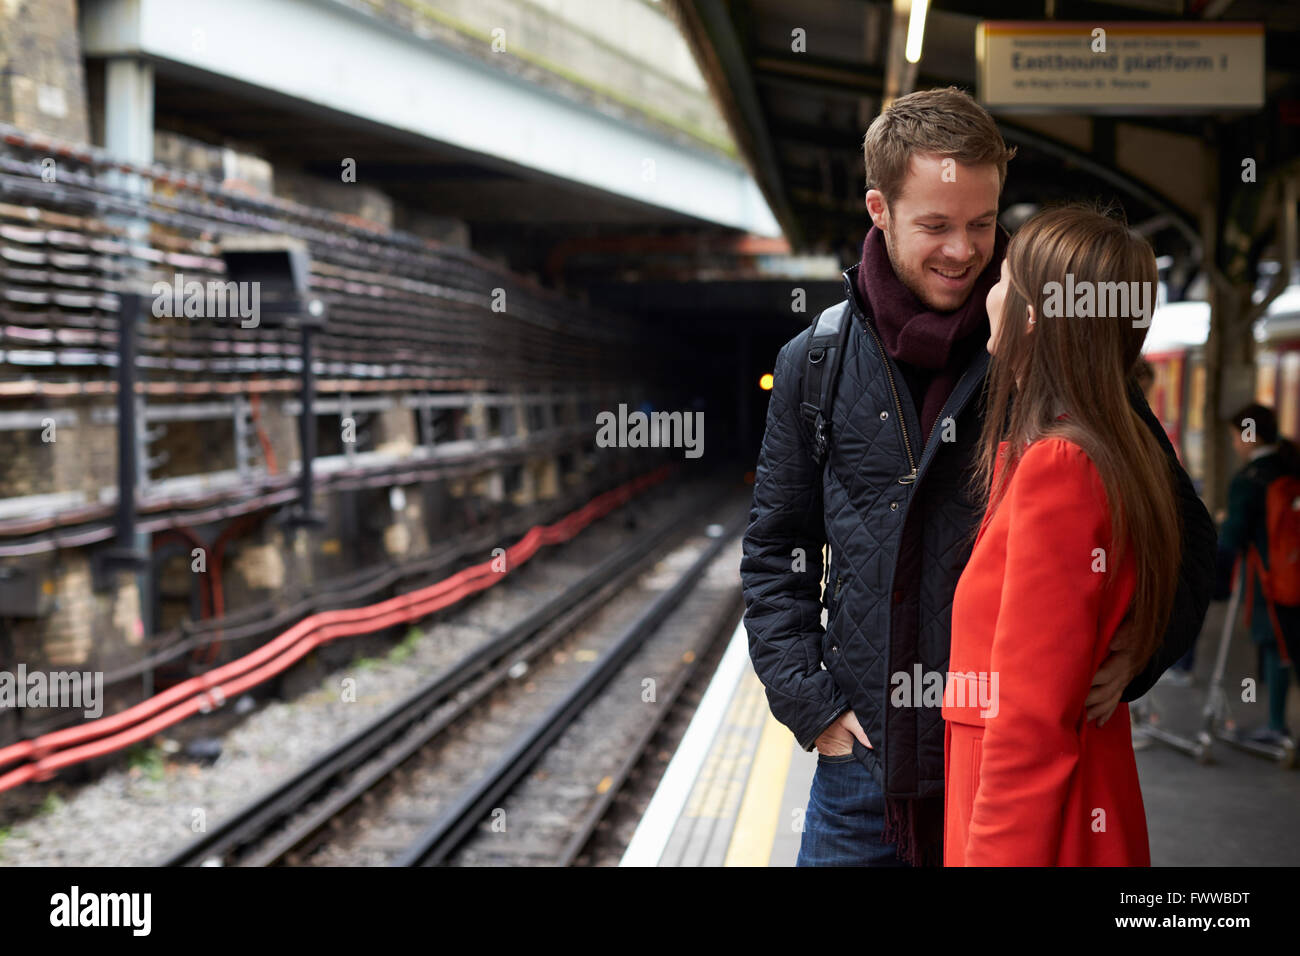 Young Couple Standing On Railway Station Platform Together - Stock Image